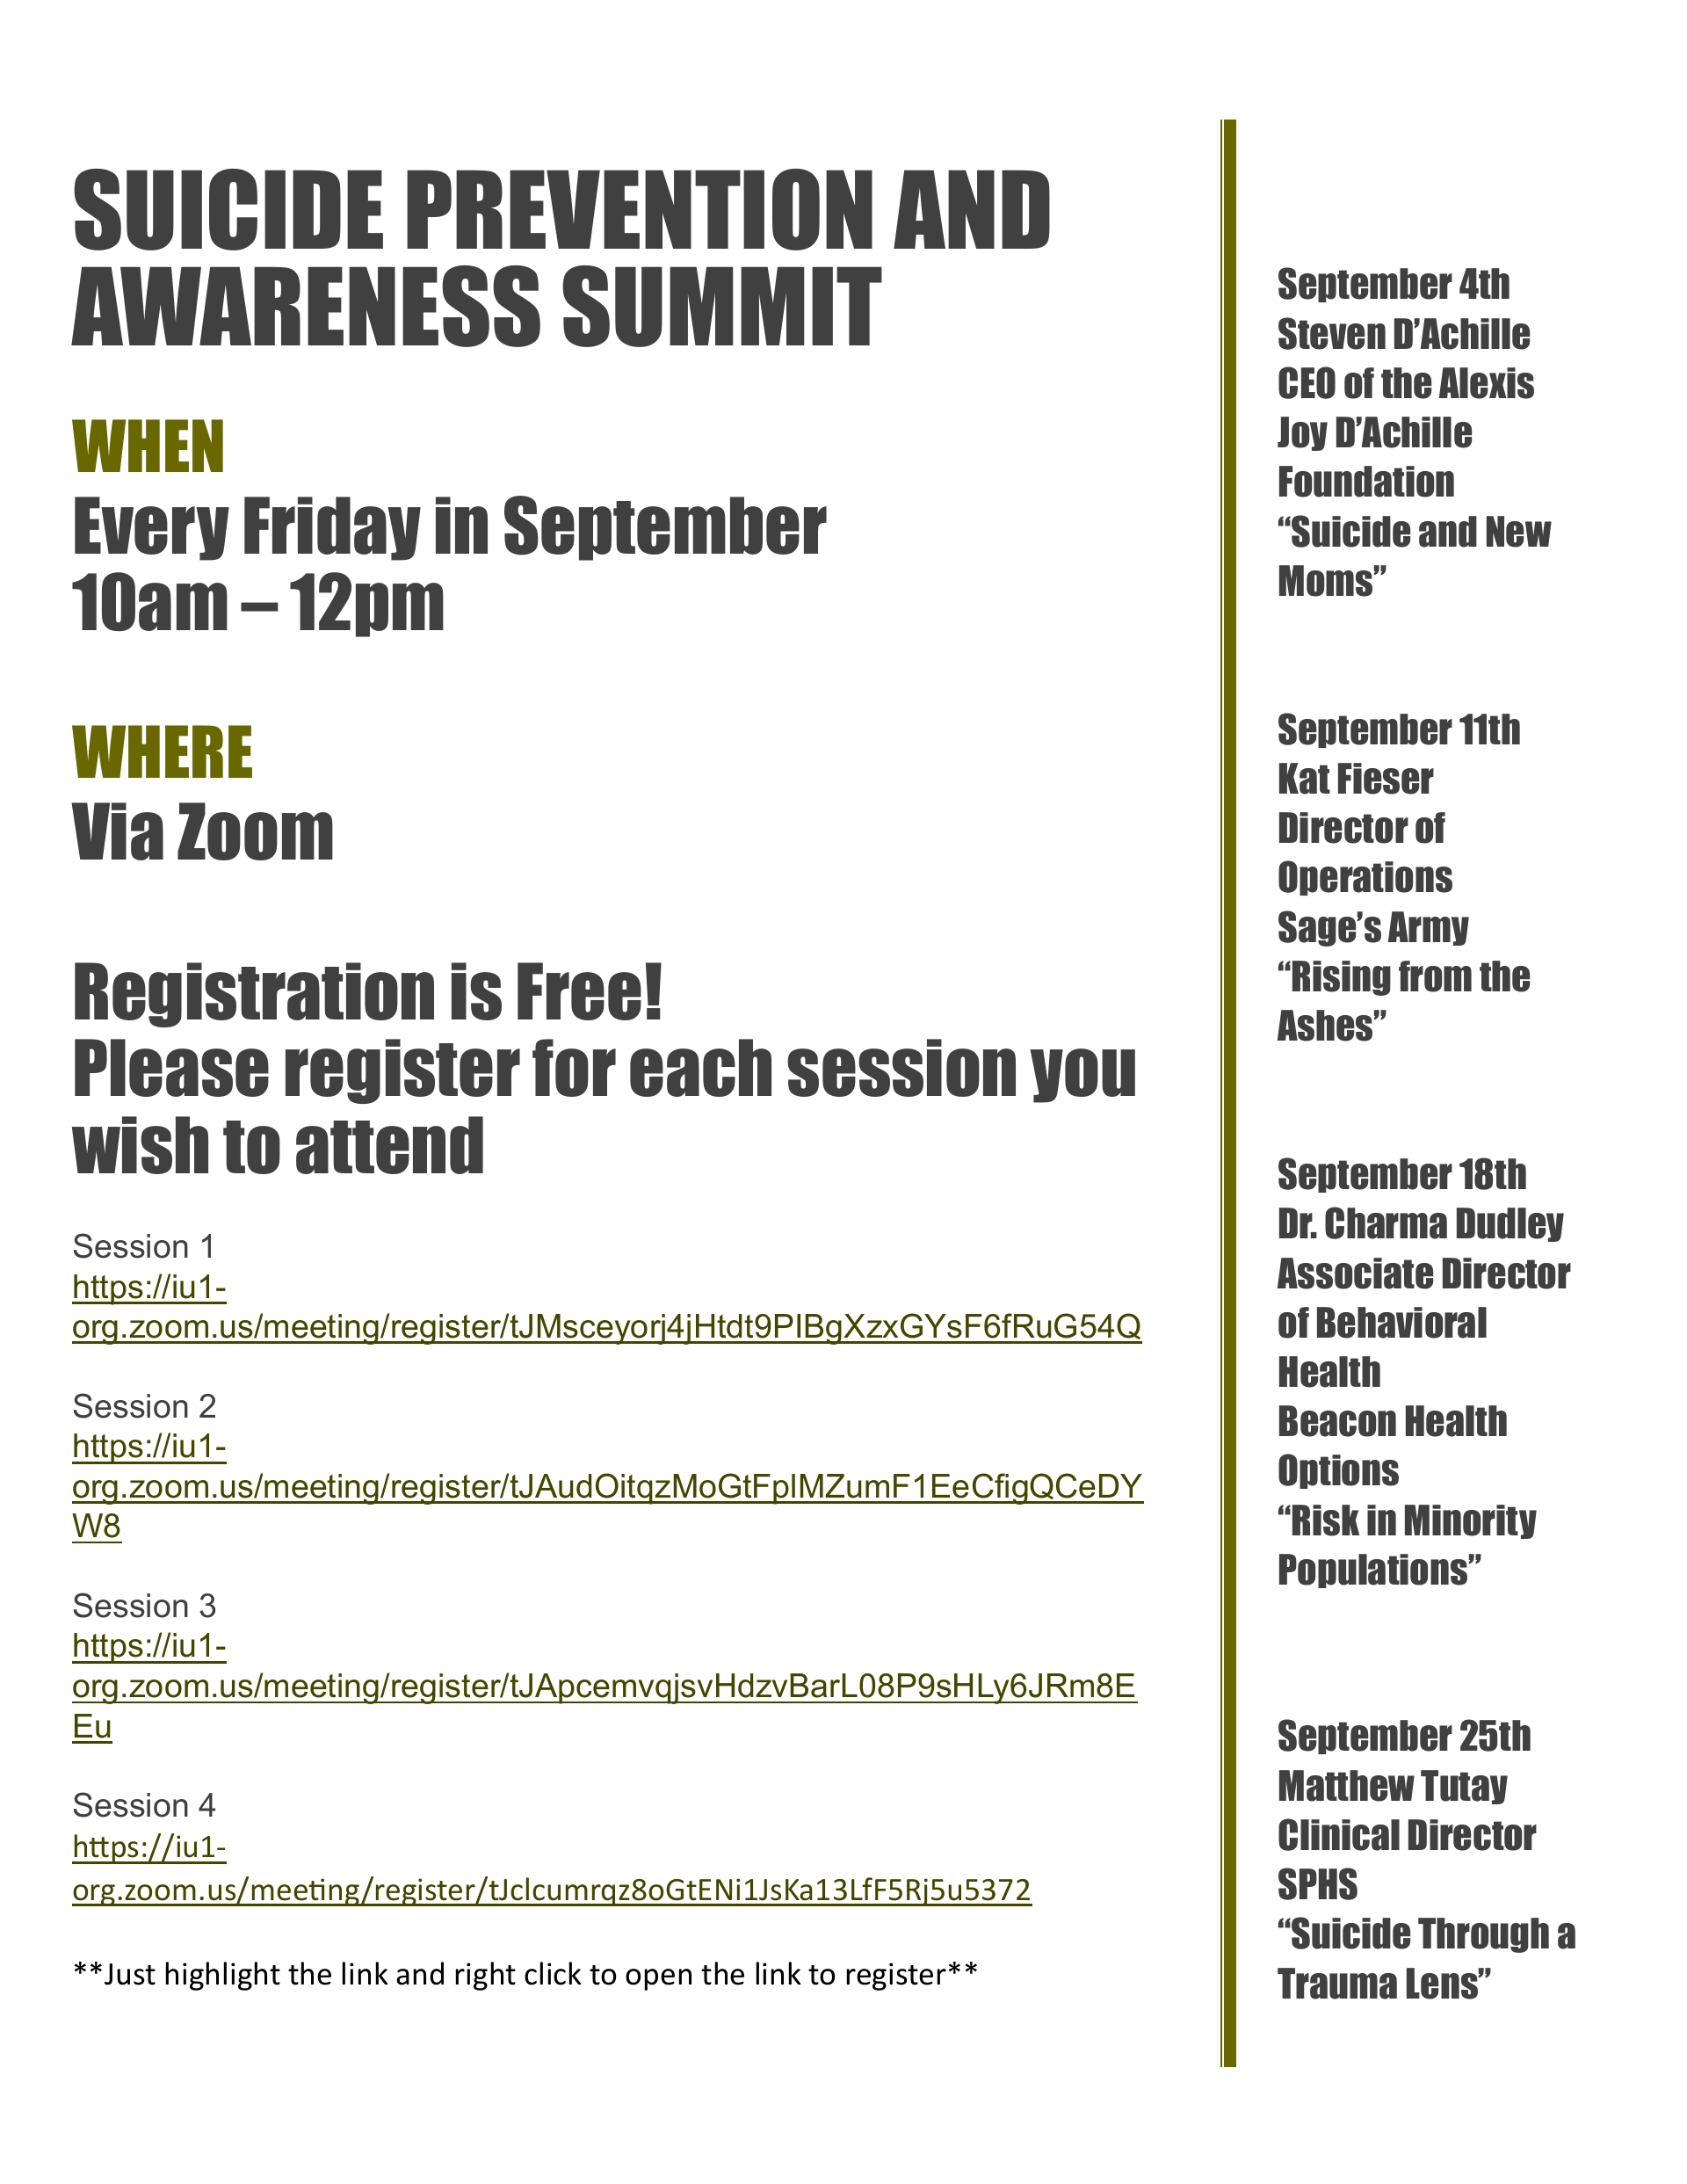 SEPTEMBER FRIDAYS SUICIDE PREVENTION AND AWARENESS SUMMIT